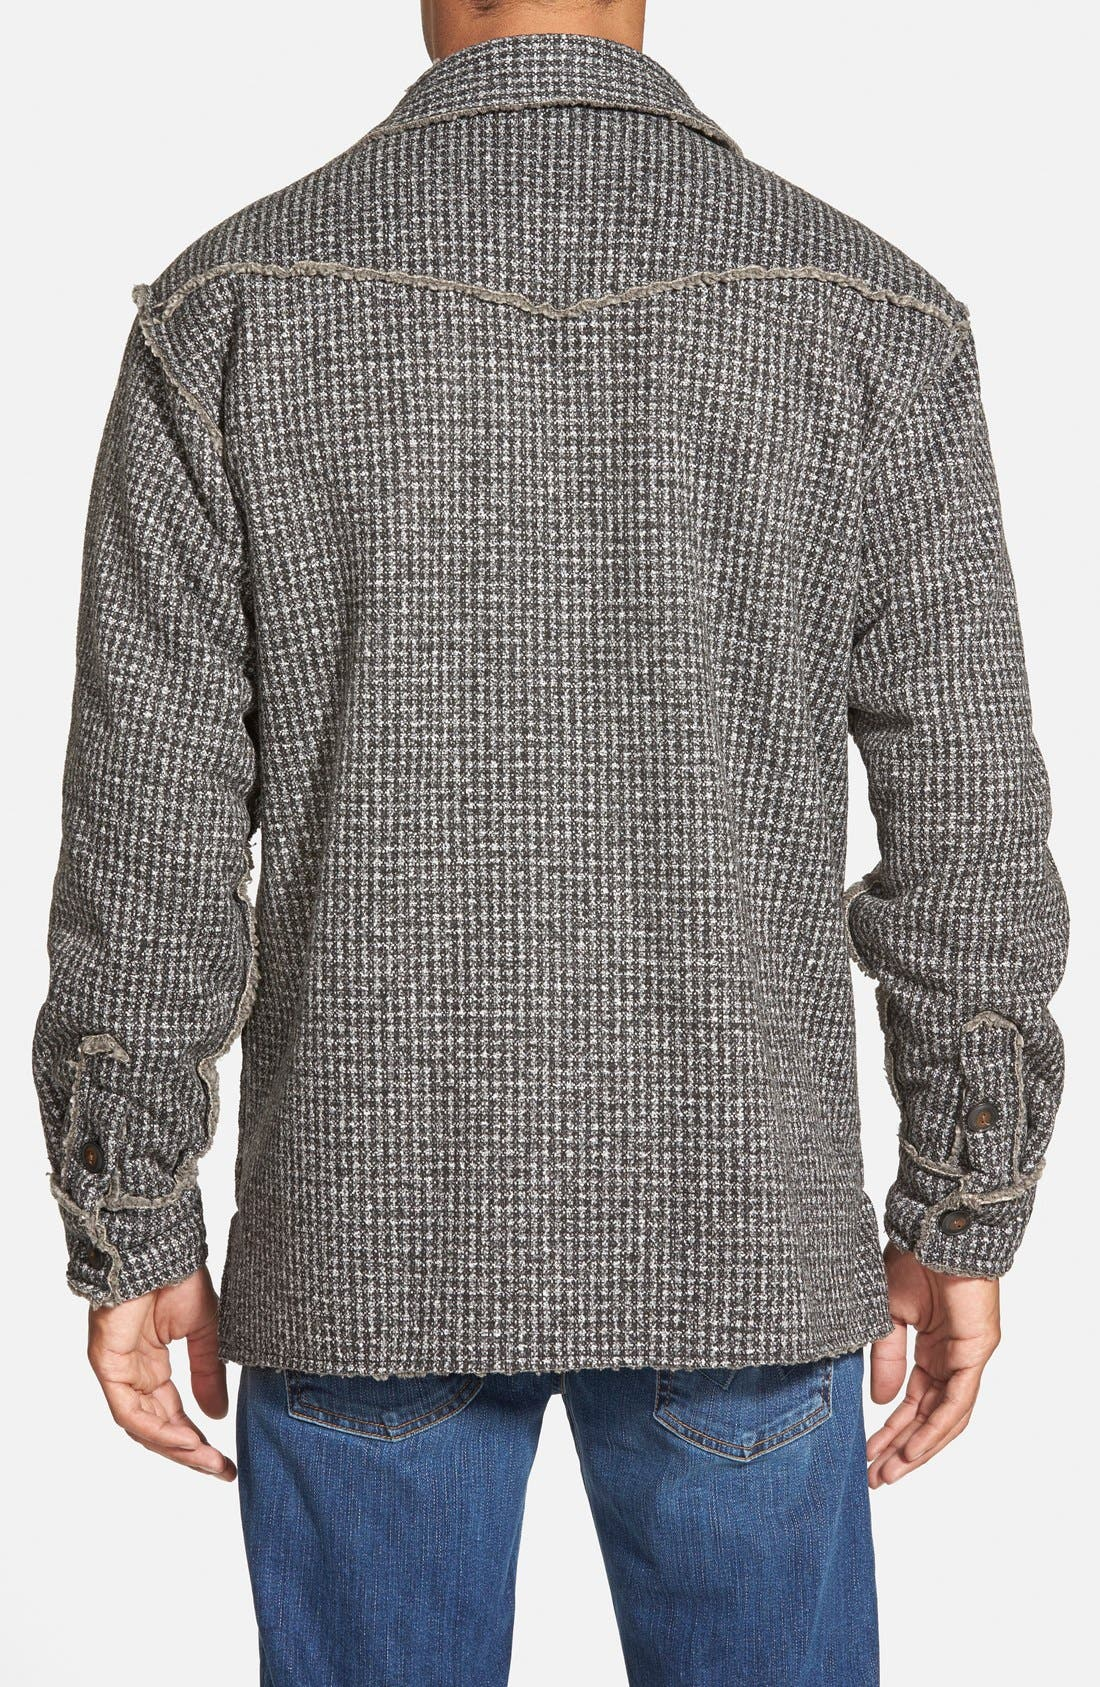 Lined Tweed Shirt Jacket,                             Alternate thumbnail 2, color,                             033